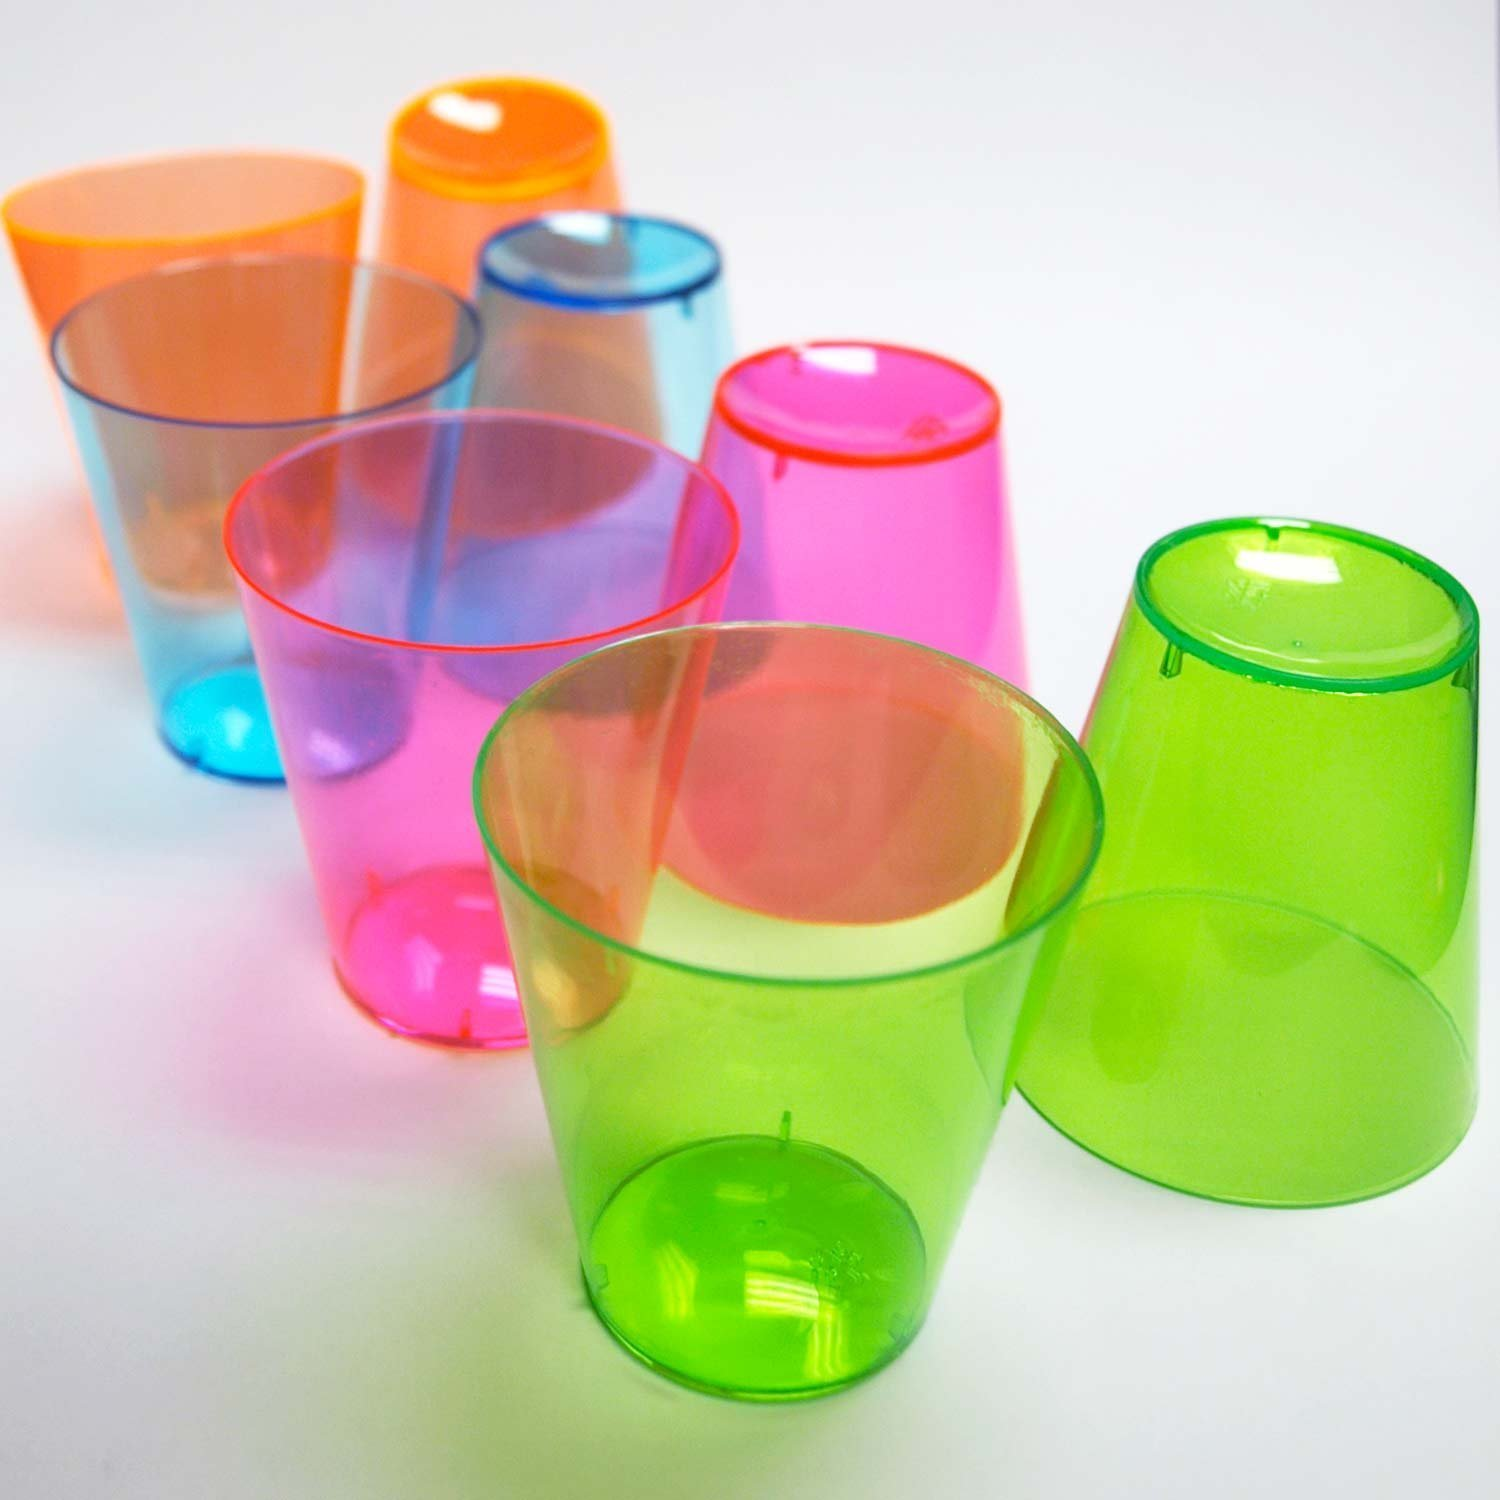 Party Essentials N212009 Hard Plastic 2 oz. Shot Glasses, Assorted Neon (Pack of 1200) by Party Essentials